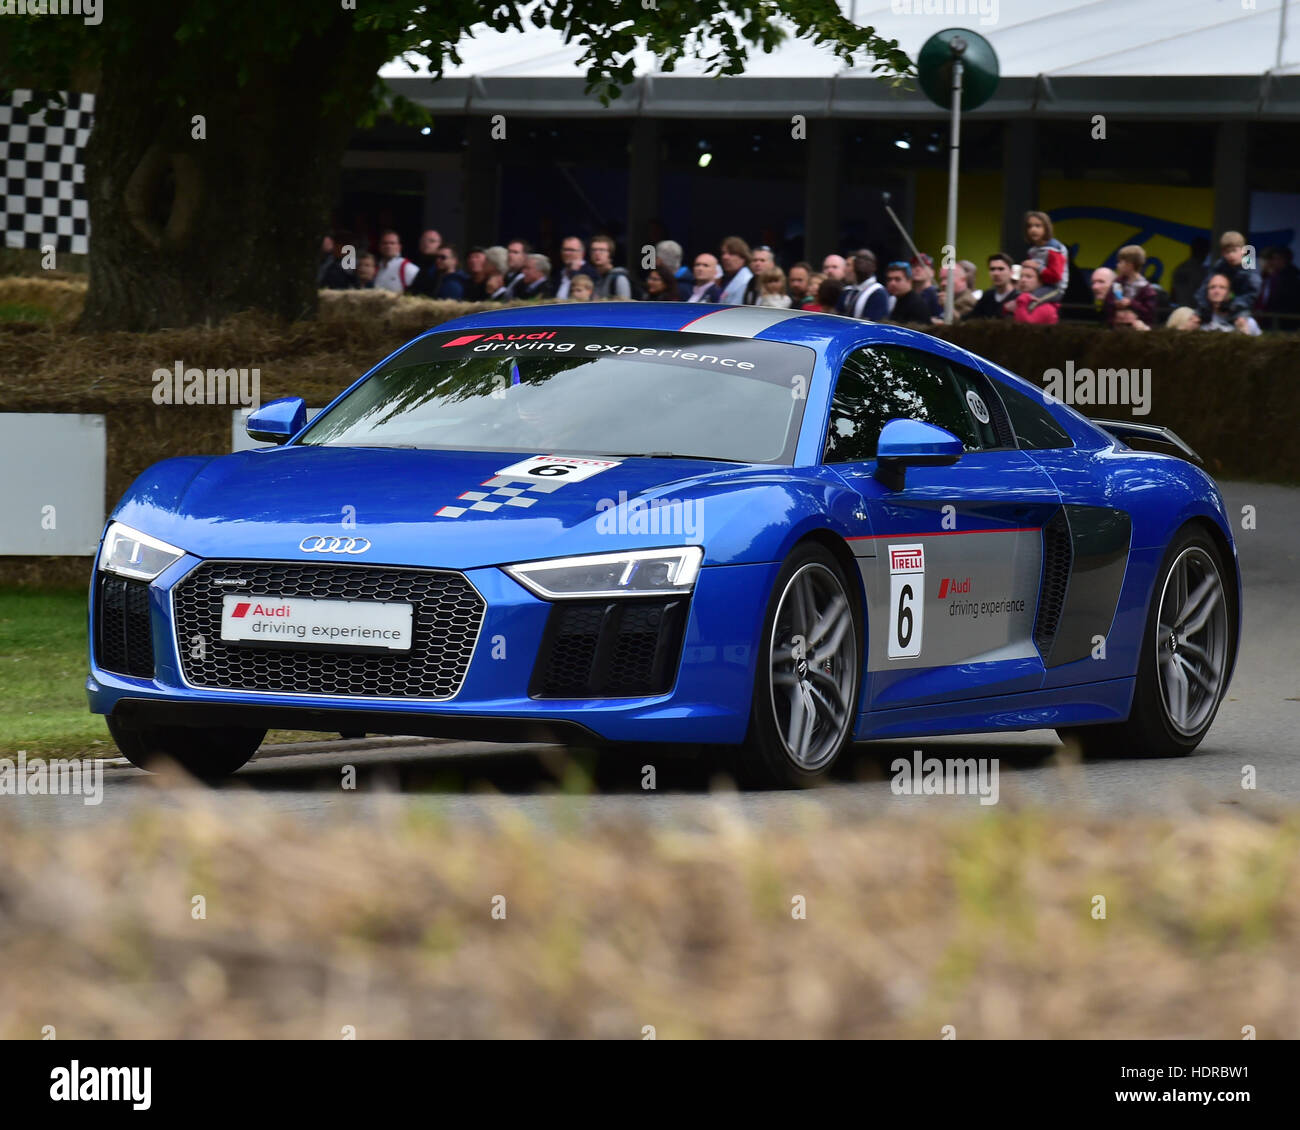 Audi R8 V10 Plus, Goodwood Festival of Speed, 2016. automobiles, cars, entertainment, Festival of Speed, FoS, Full - Stock Image